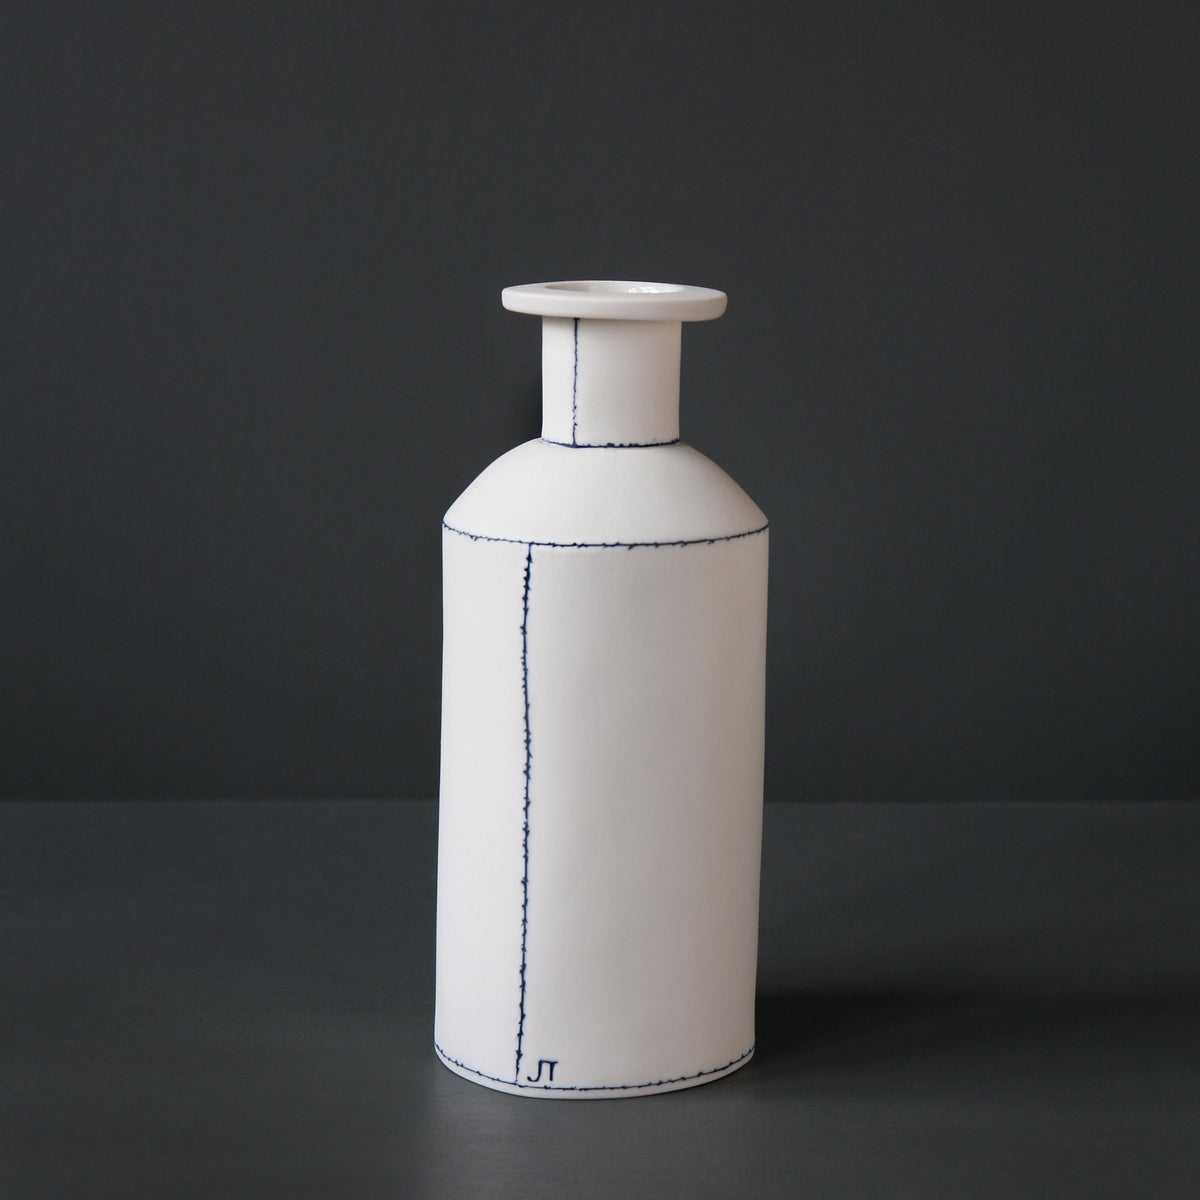 Image of Large 'Apothecary' Bottle by Jessica Thorn.